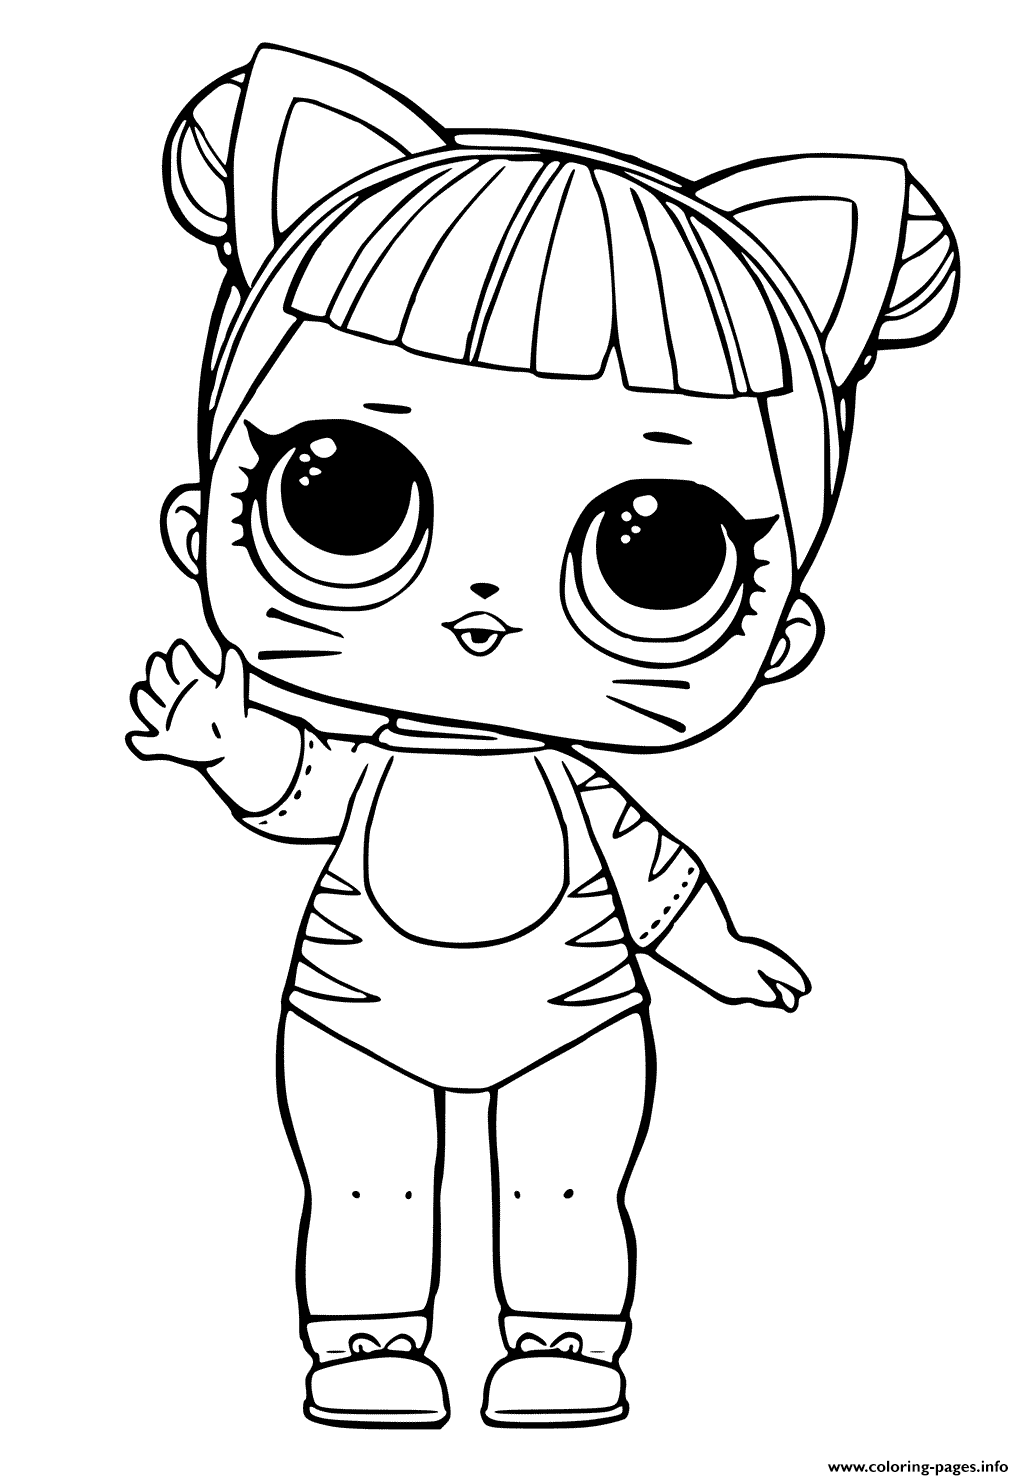 cute coloring pages to print print lol doll tiger cat cute coloring pages cat print to pages coloring cute